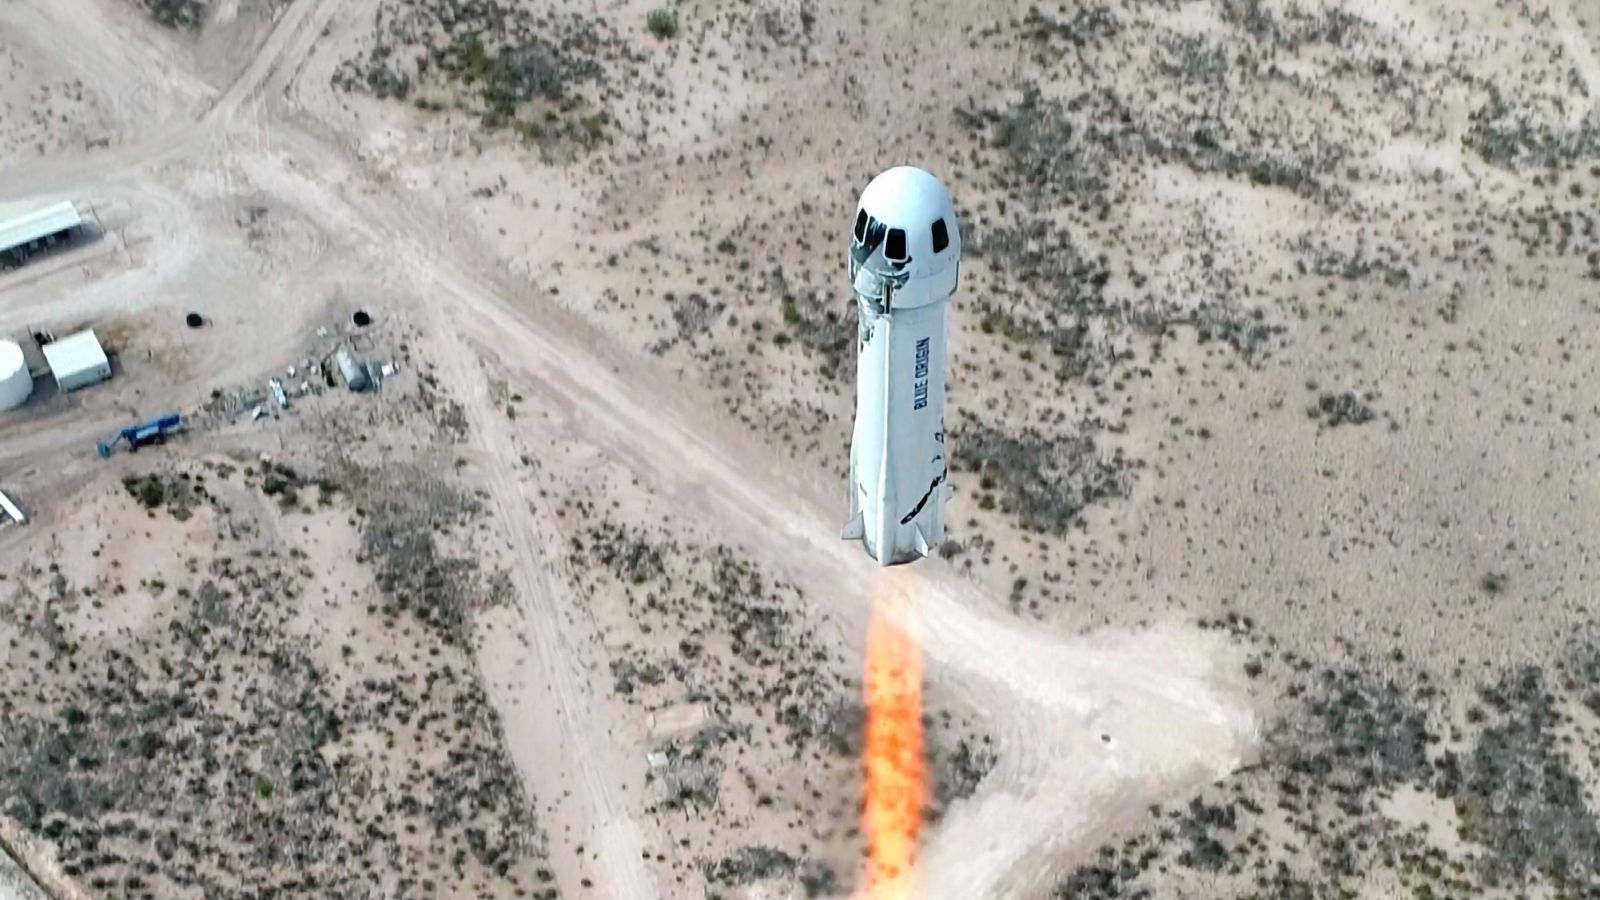 A file photo of the previous New Shepard flight in April 2021. The July 20, 2021, flight saw billionaire founder Jeff Bezos, his brother Mark Bezos, aviation pioneer Wally Funk and Dutch student Oliver Daemon fly to space on the first crewed flight of Blue Origin's suborbital New Shepard rocket. Credit: Blue Origin